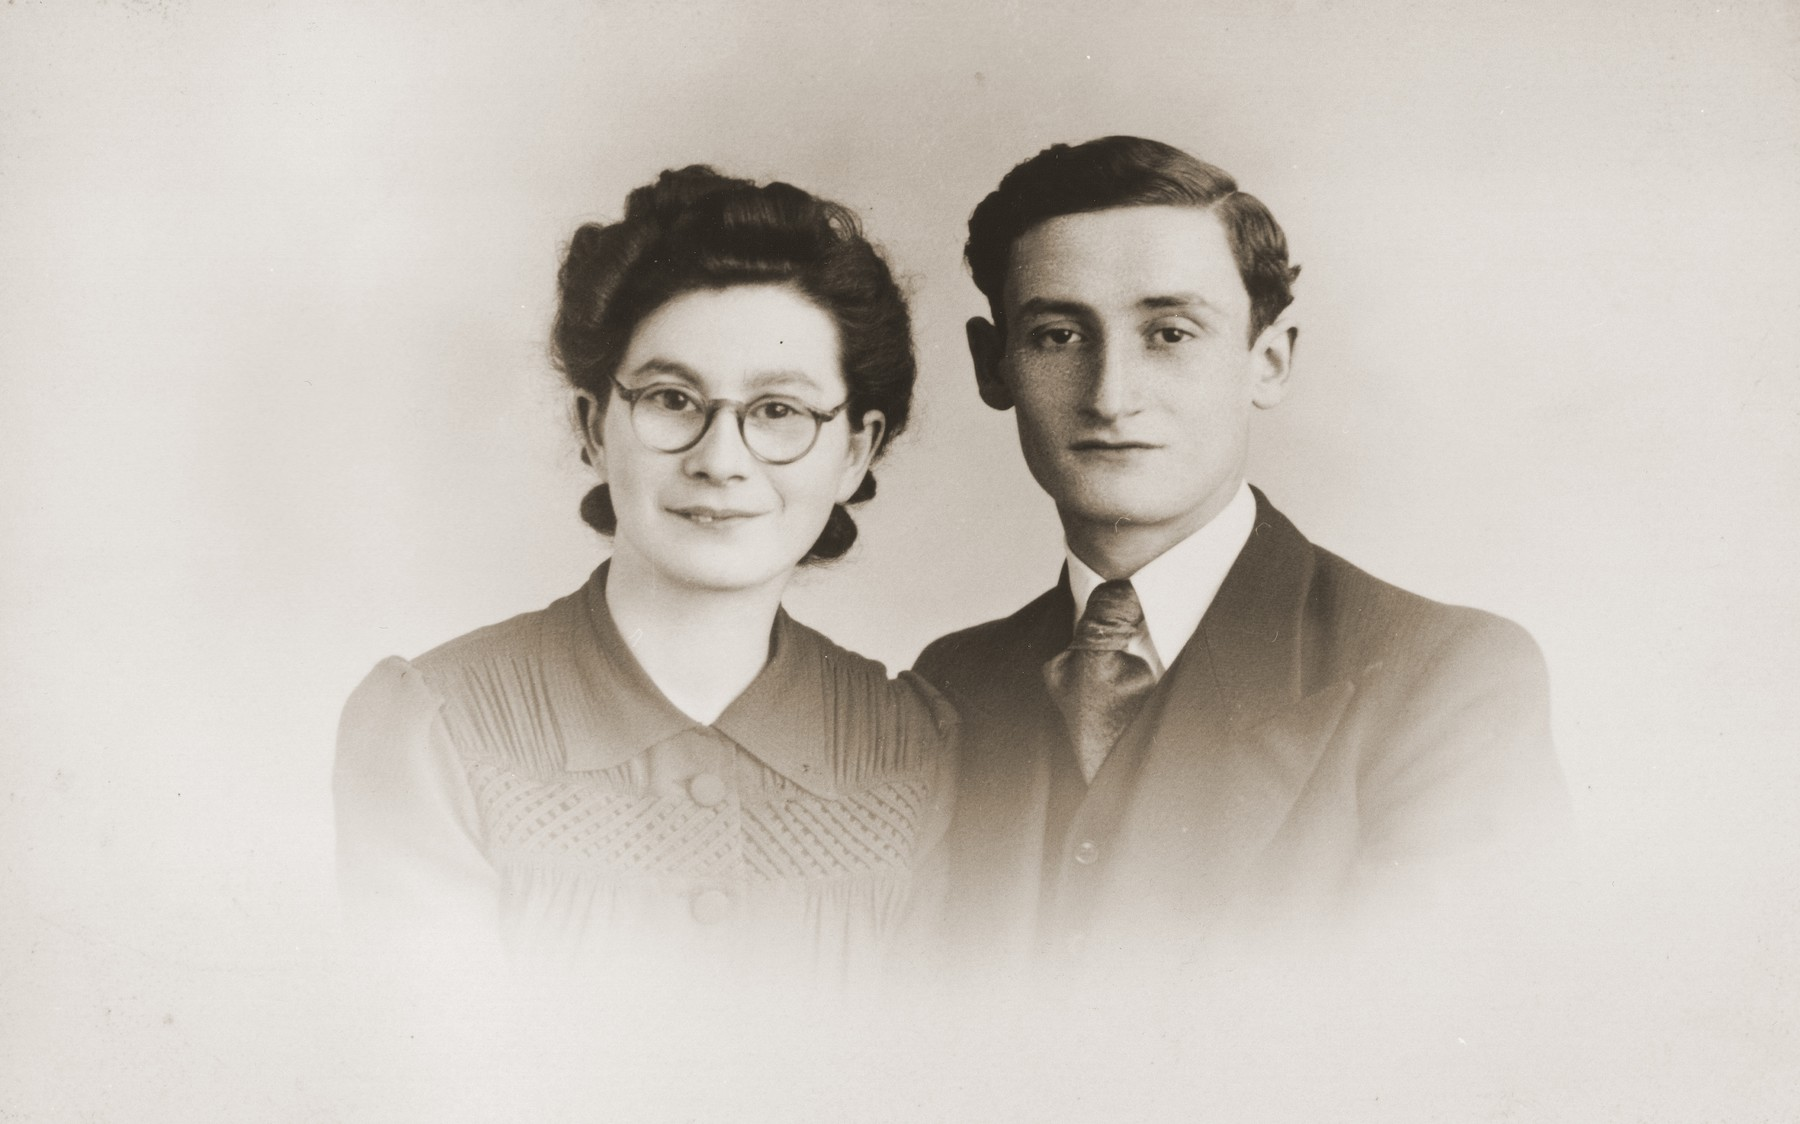 Engagement photo of Bettie Meijer and Horst ?.  Both were deported from Holland and killed in Sobibor.